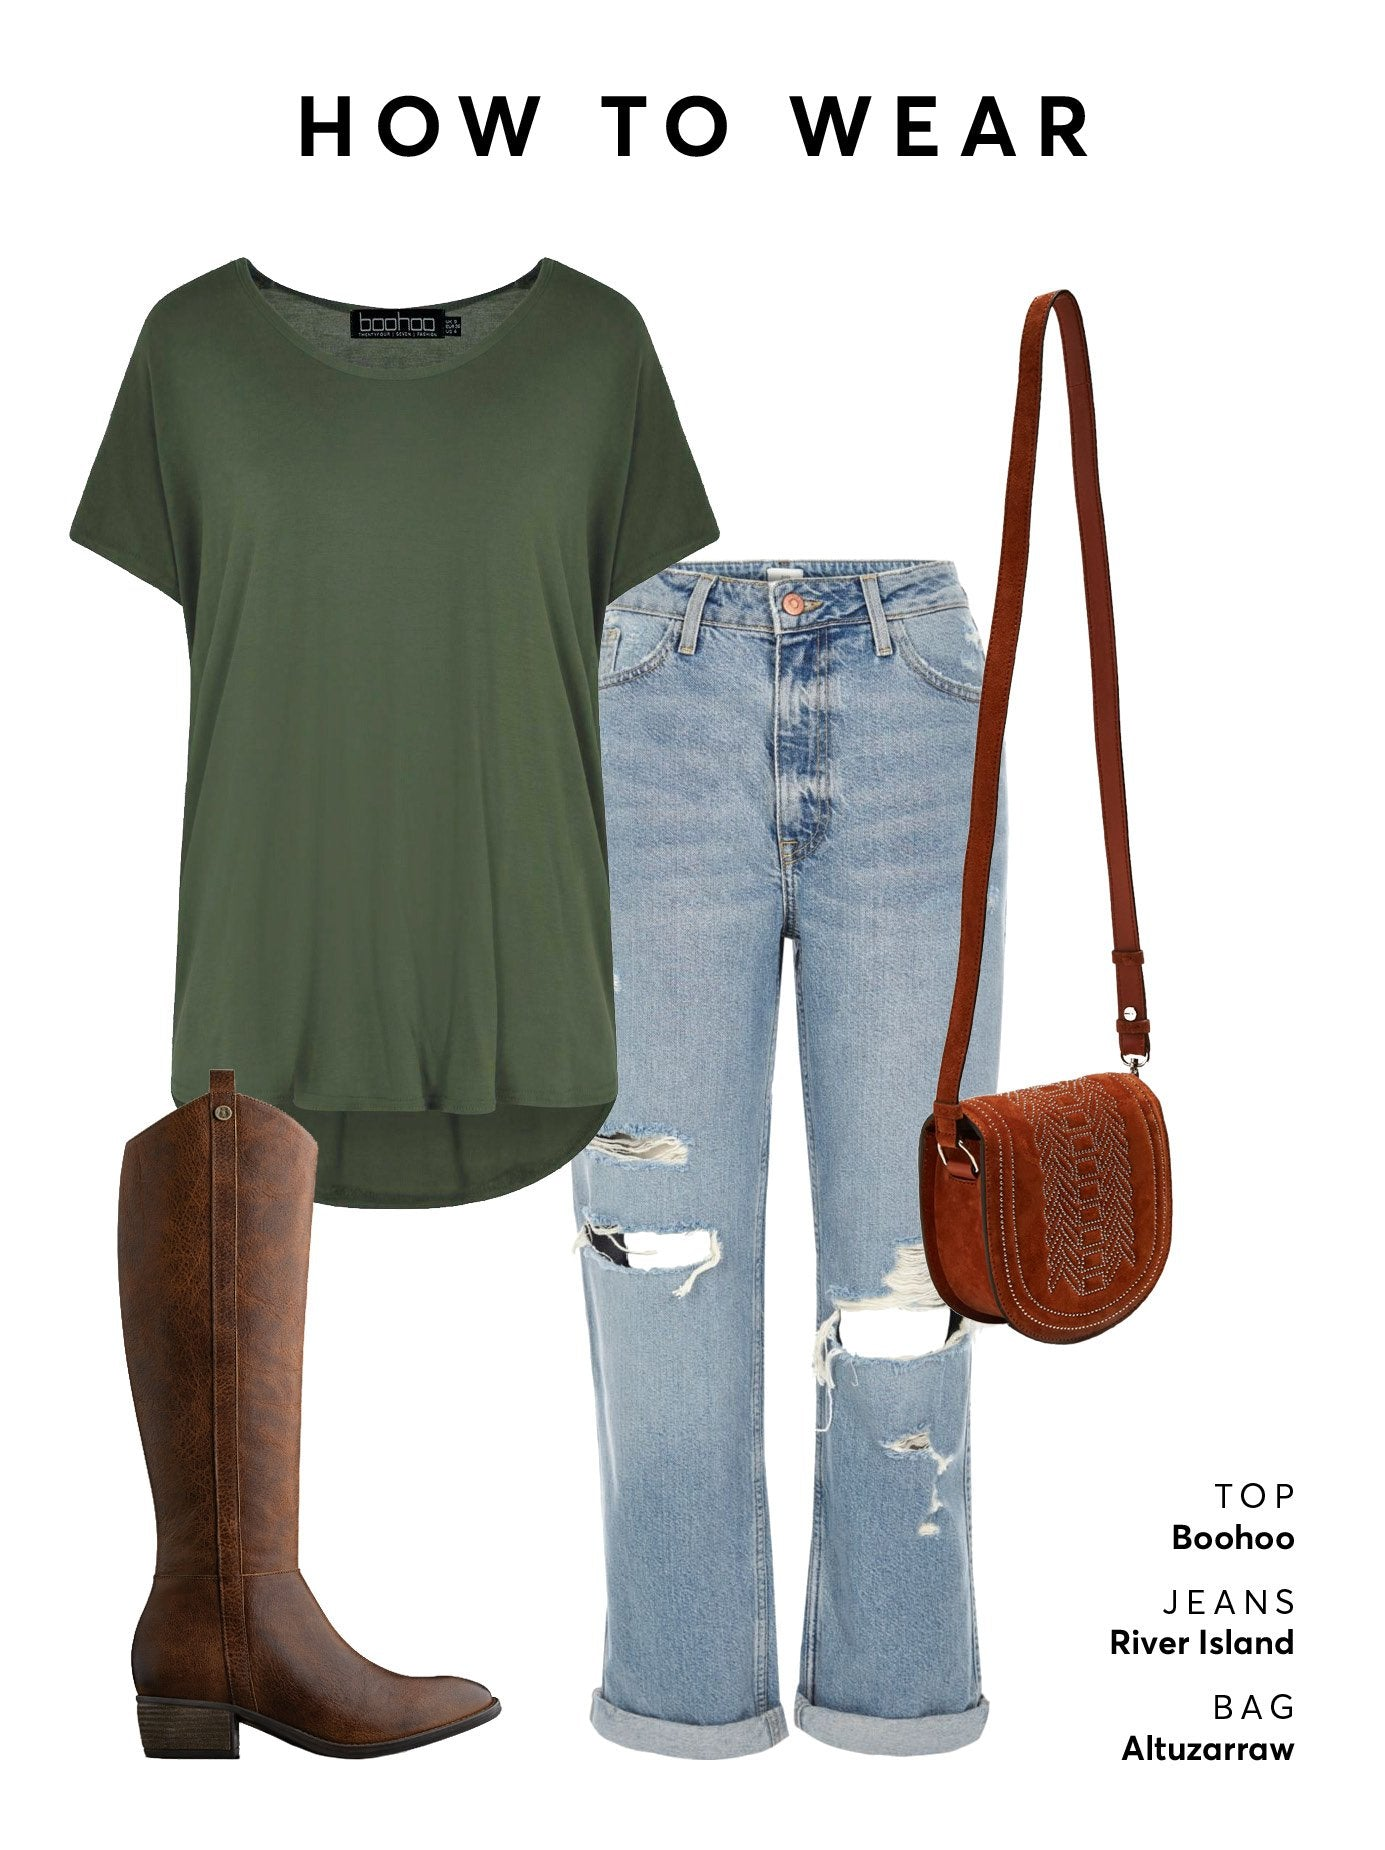 Wear with denim jeans a casual top and a cross-over bag for a chic look.